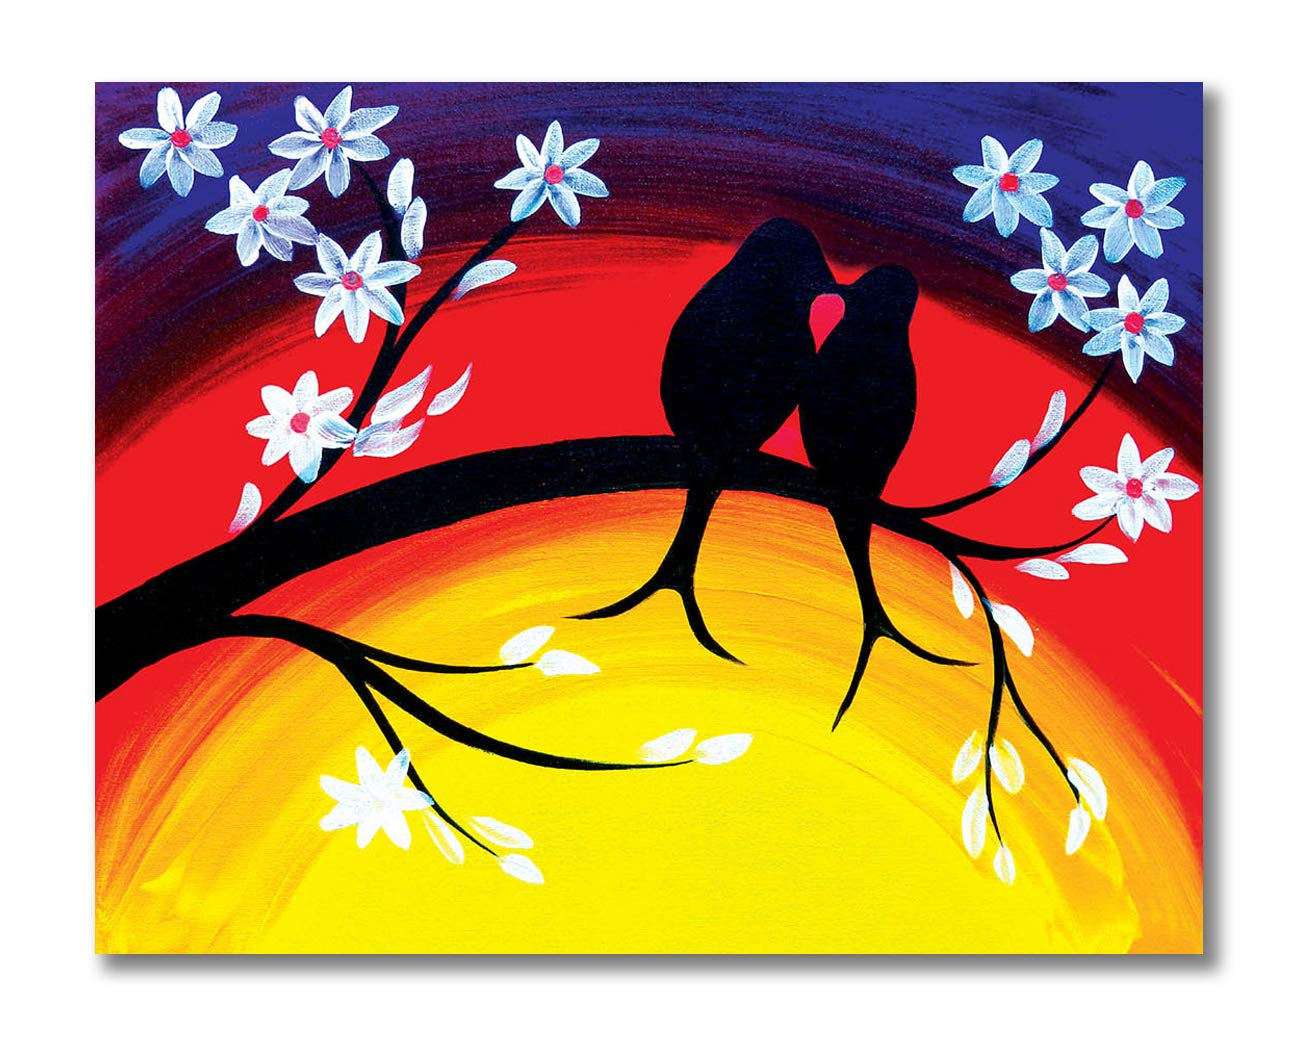 Tamatina Canvas Painting Love Birds Home Decor Paintings For Living Room Modern Art Painting Painting For Home Decor Painting For Drawing Room Wall Painting For